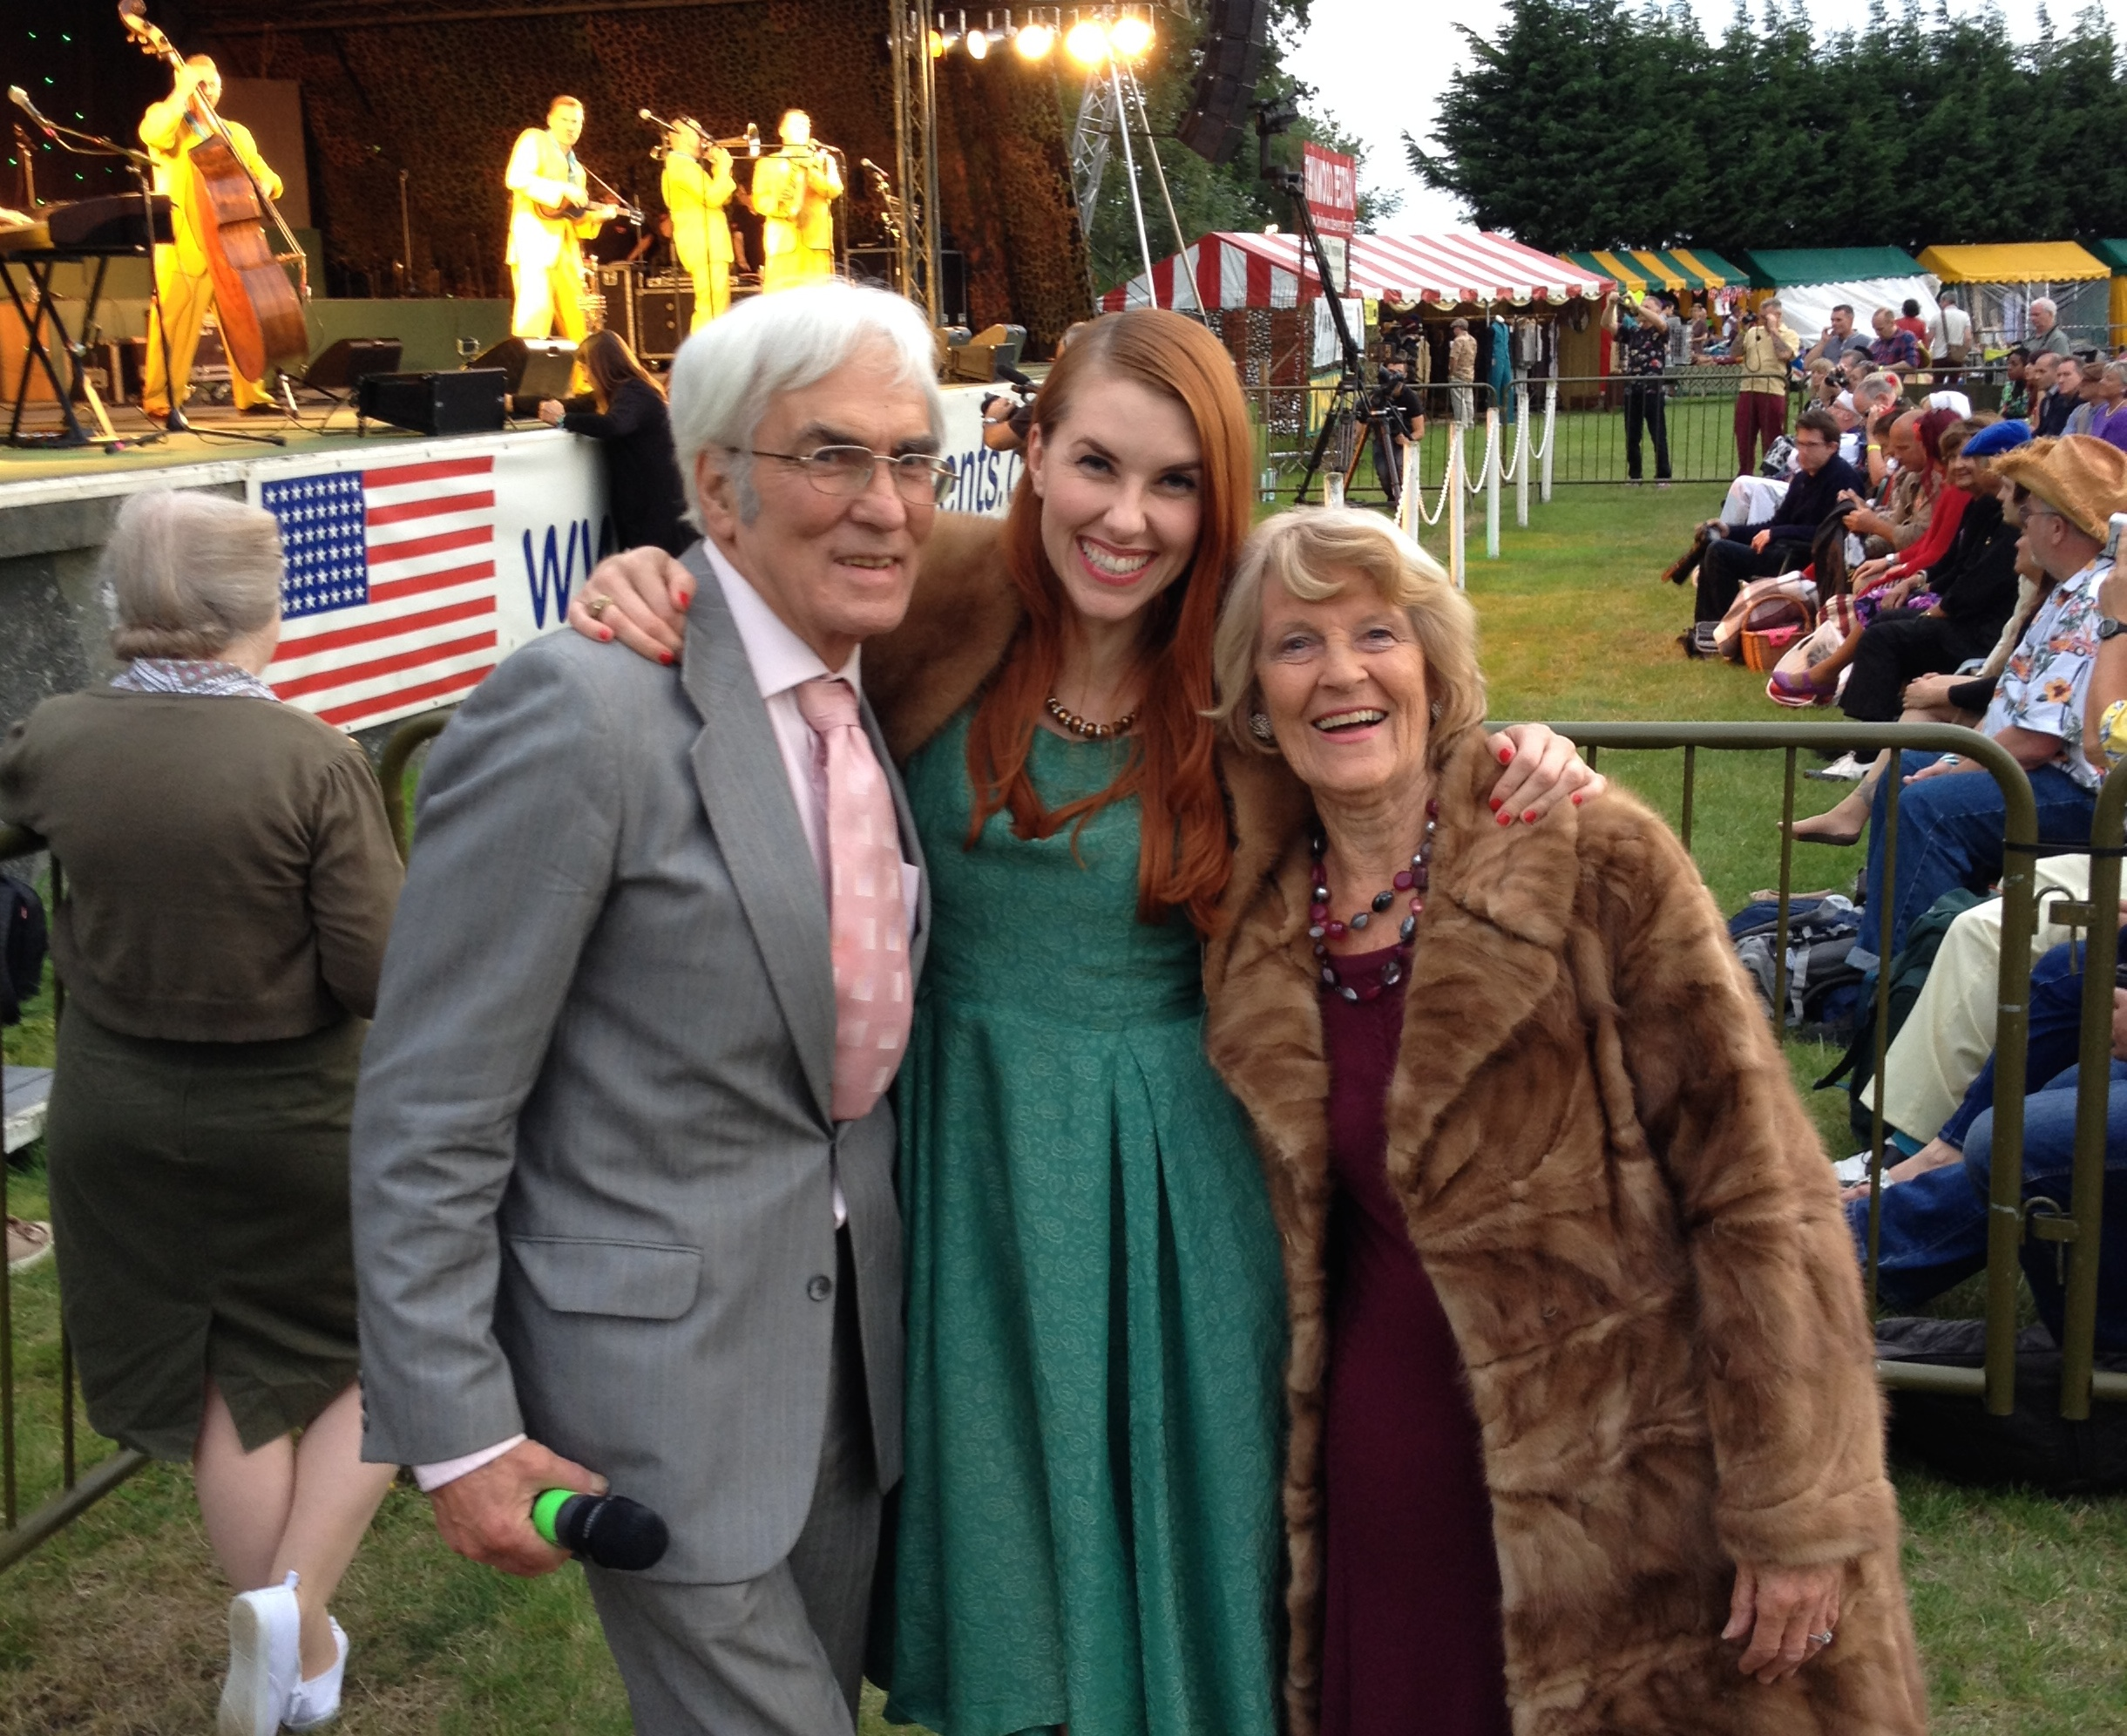 Bunny with Big Band Leader, John Miller, and her Great Aunt, Yvonne